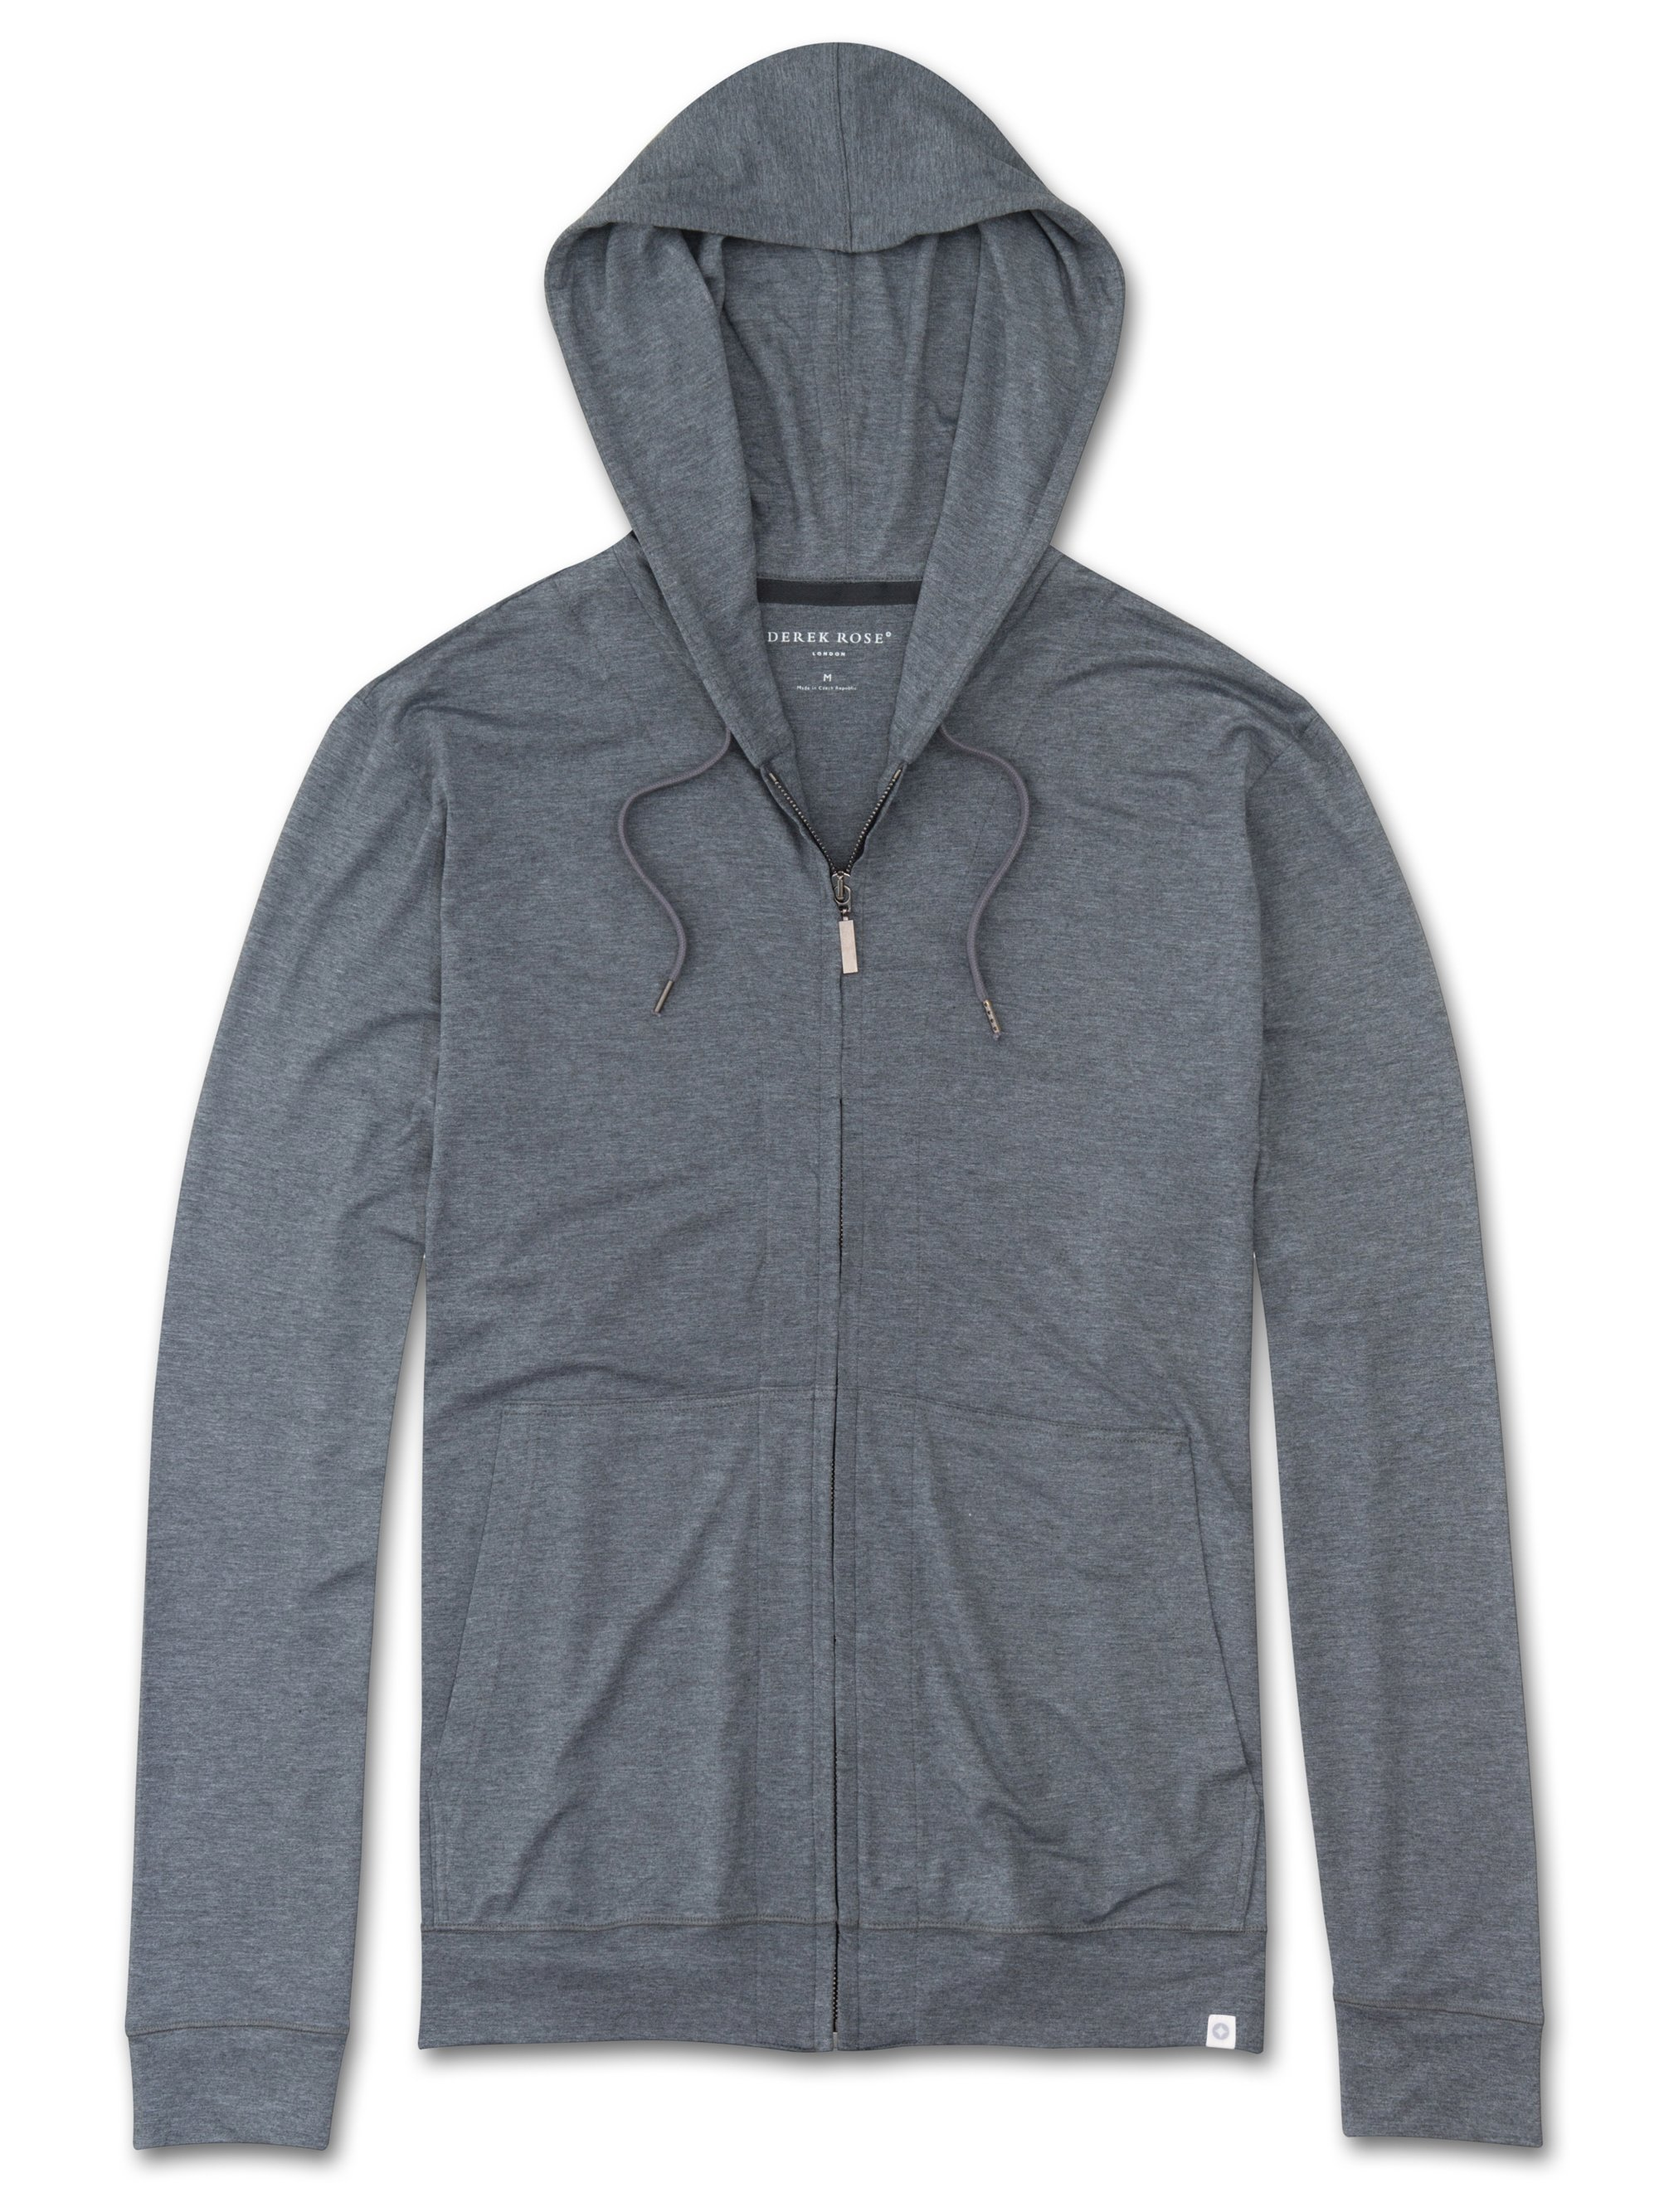 Derek Rose Men's Jersey Hoodie — Marlowe Micro Modal Stretch Charcoal